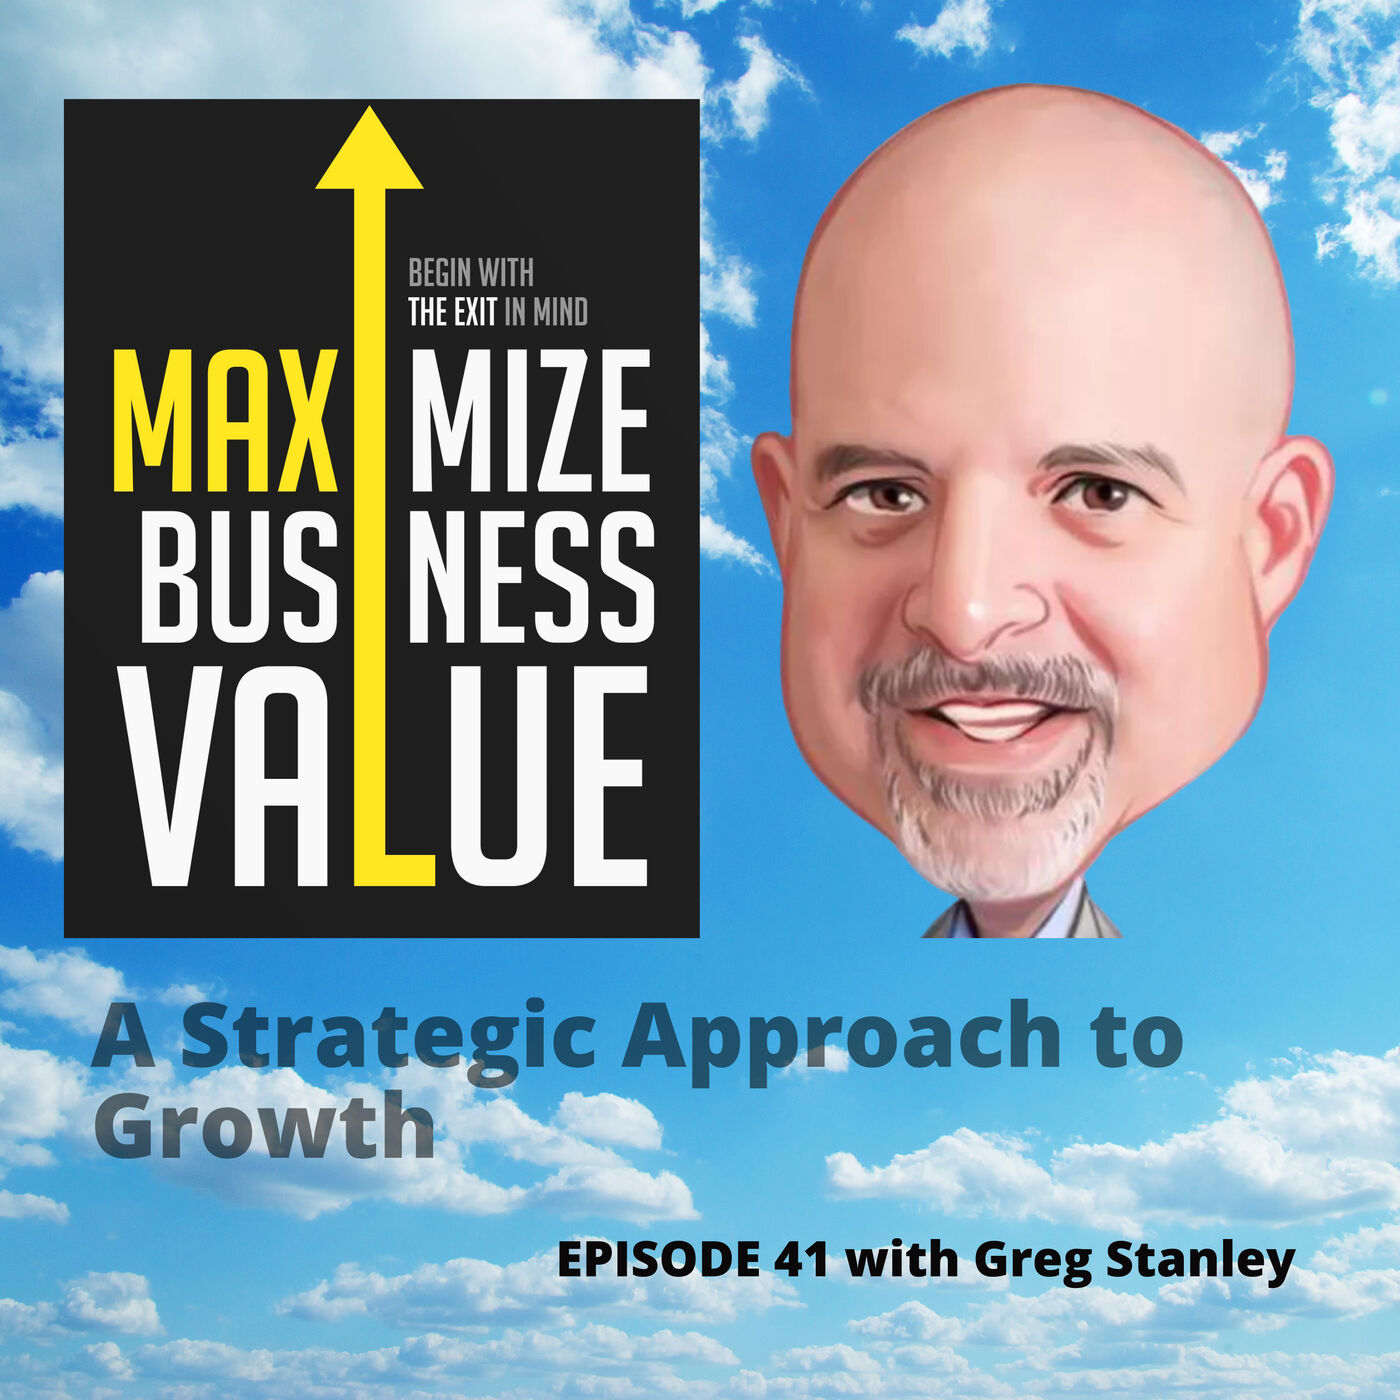 A Strategic Approach to Growth